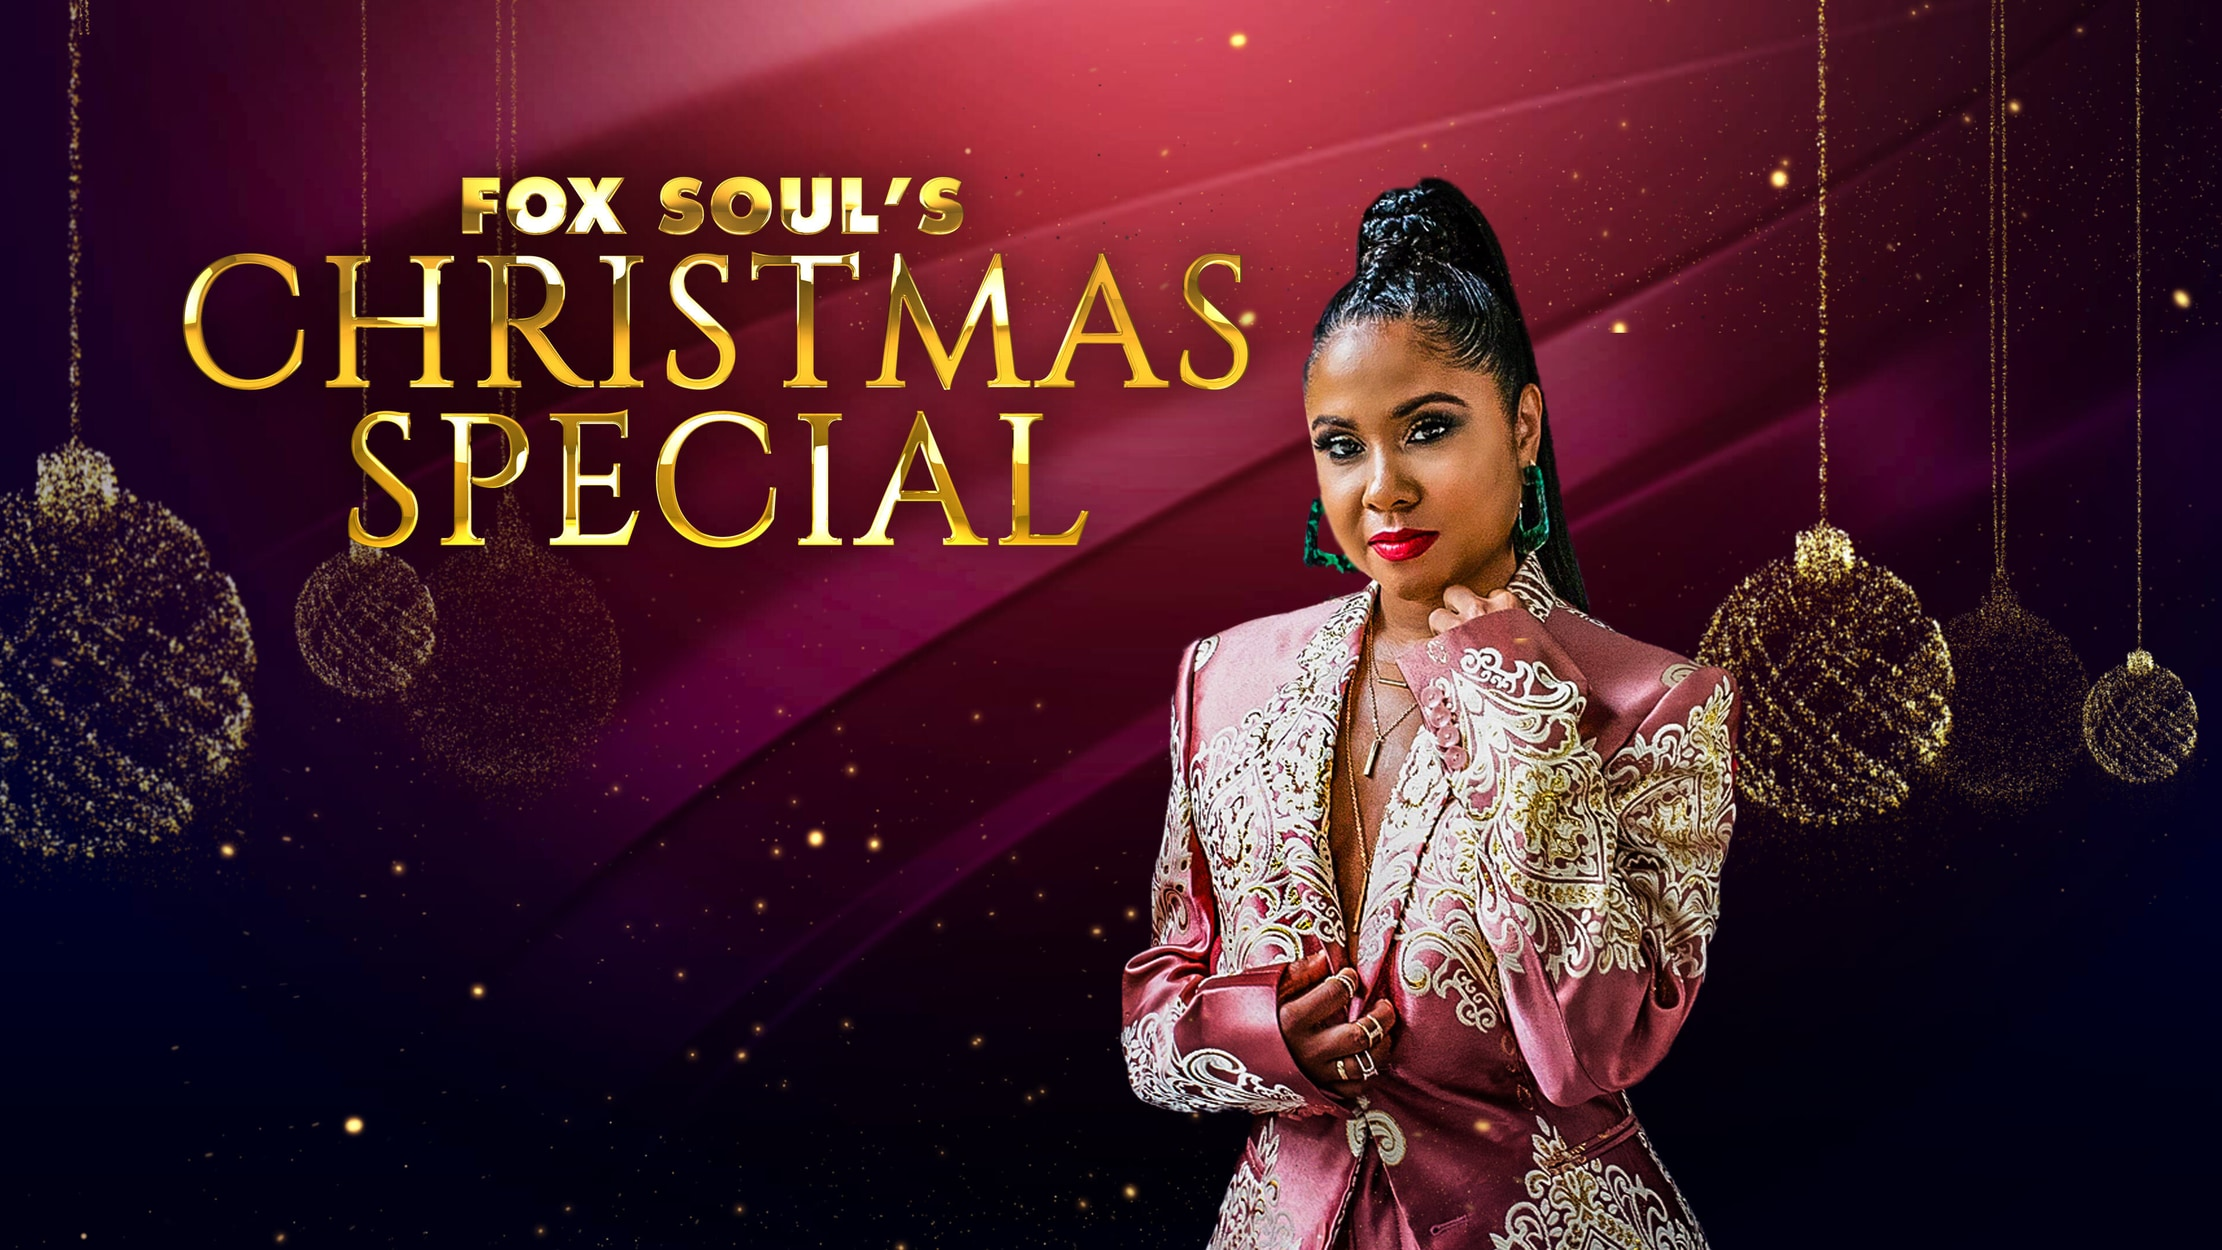 FOX SOUL's Christmas Special seriesDetail